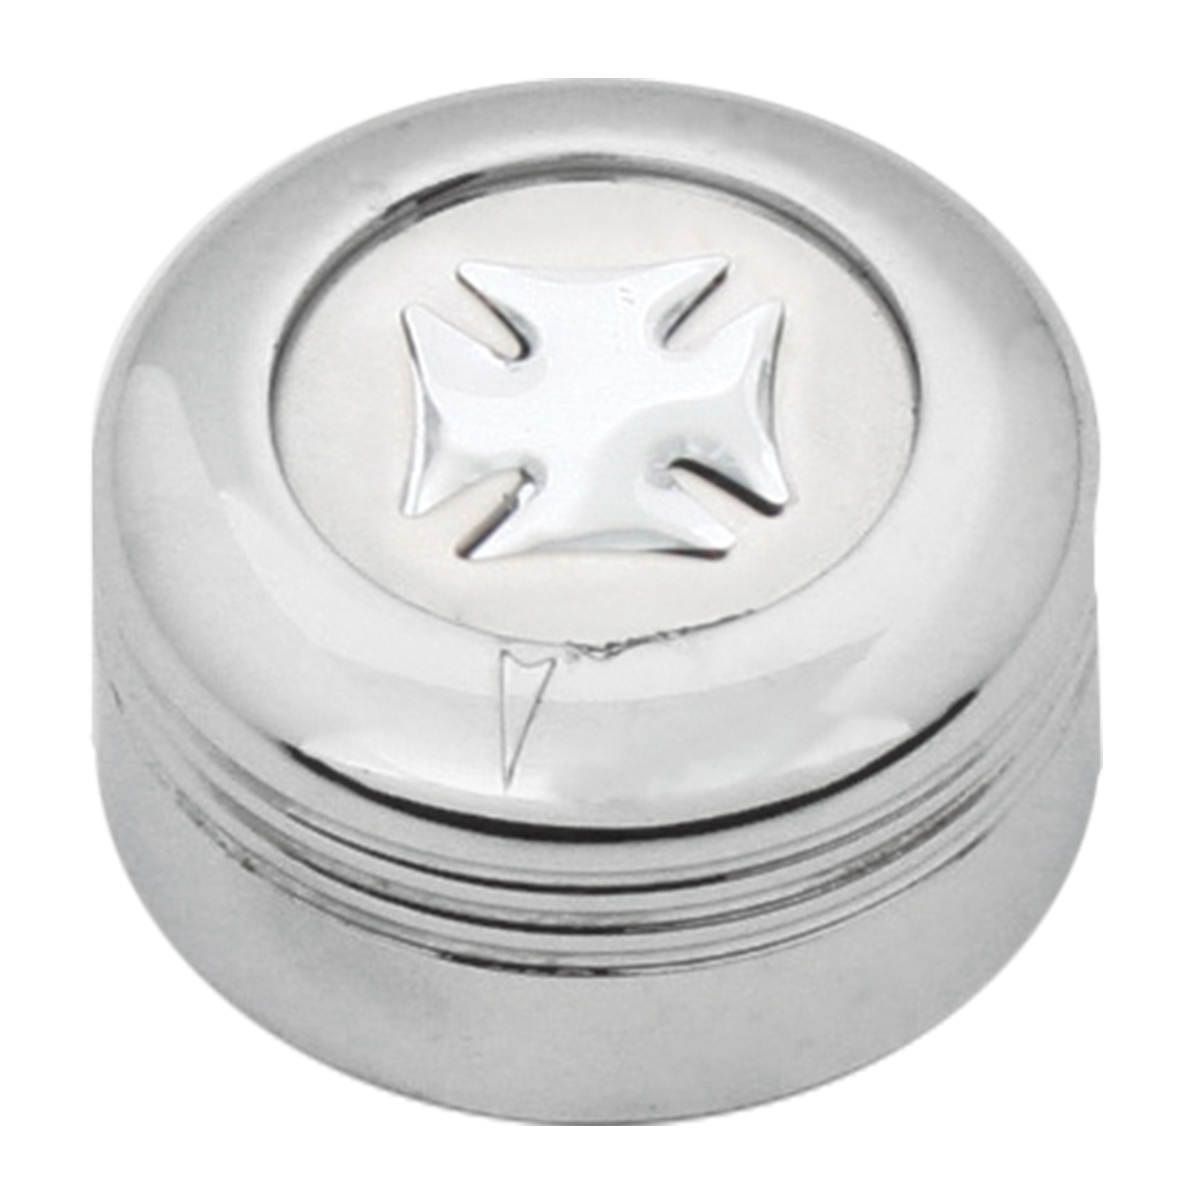 Chrome Plastic A/C Knob w/ Silver Iron Cross for Pete